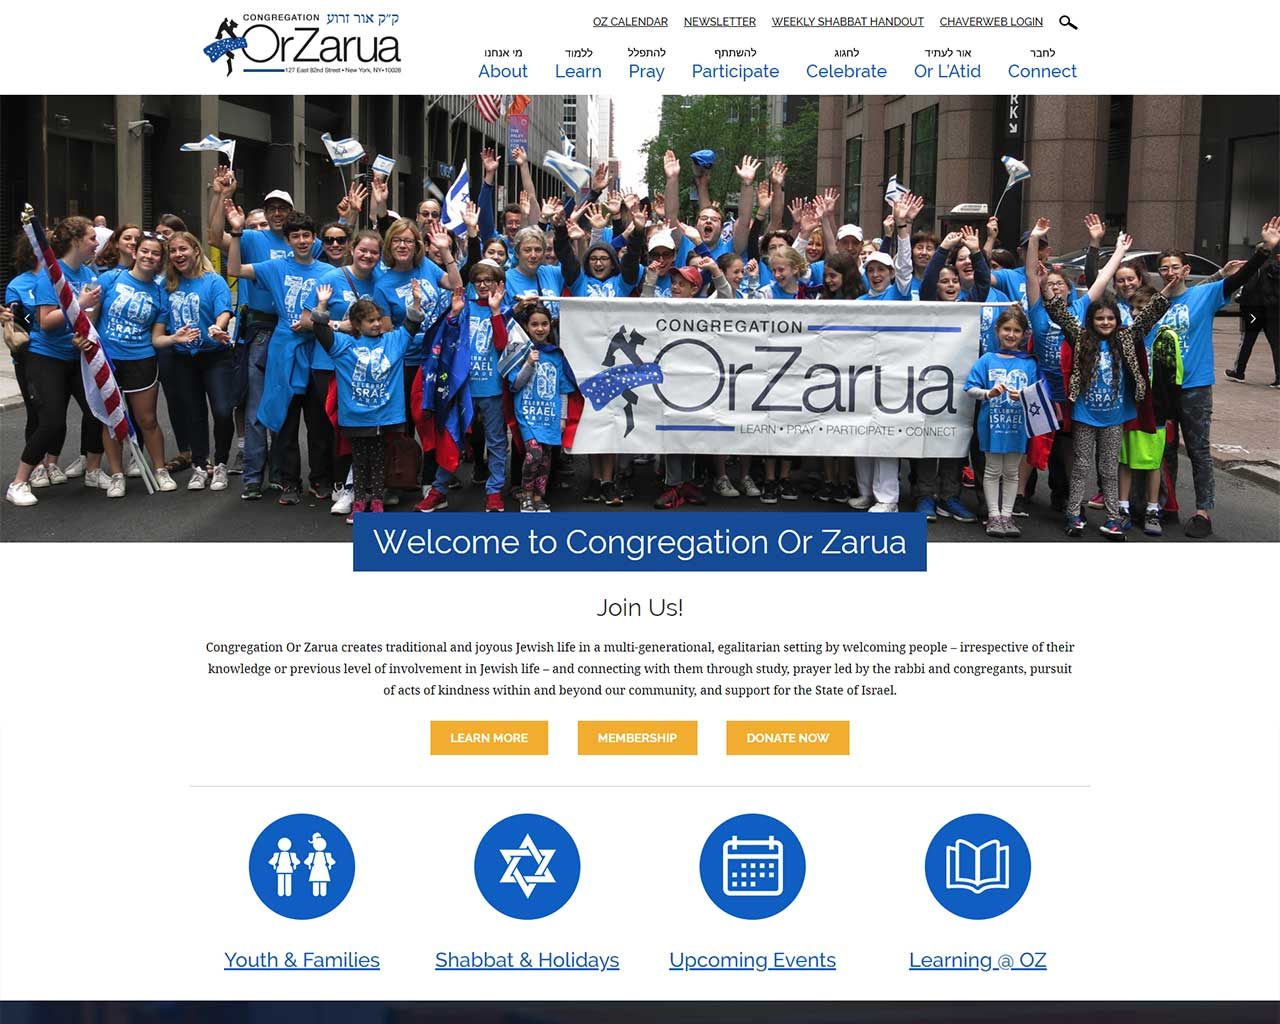 Congregation Or Zarua - synagogue website homepage